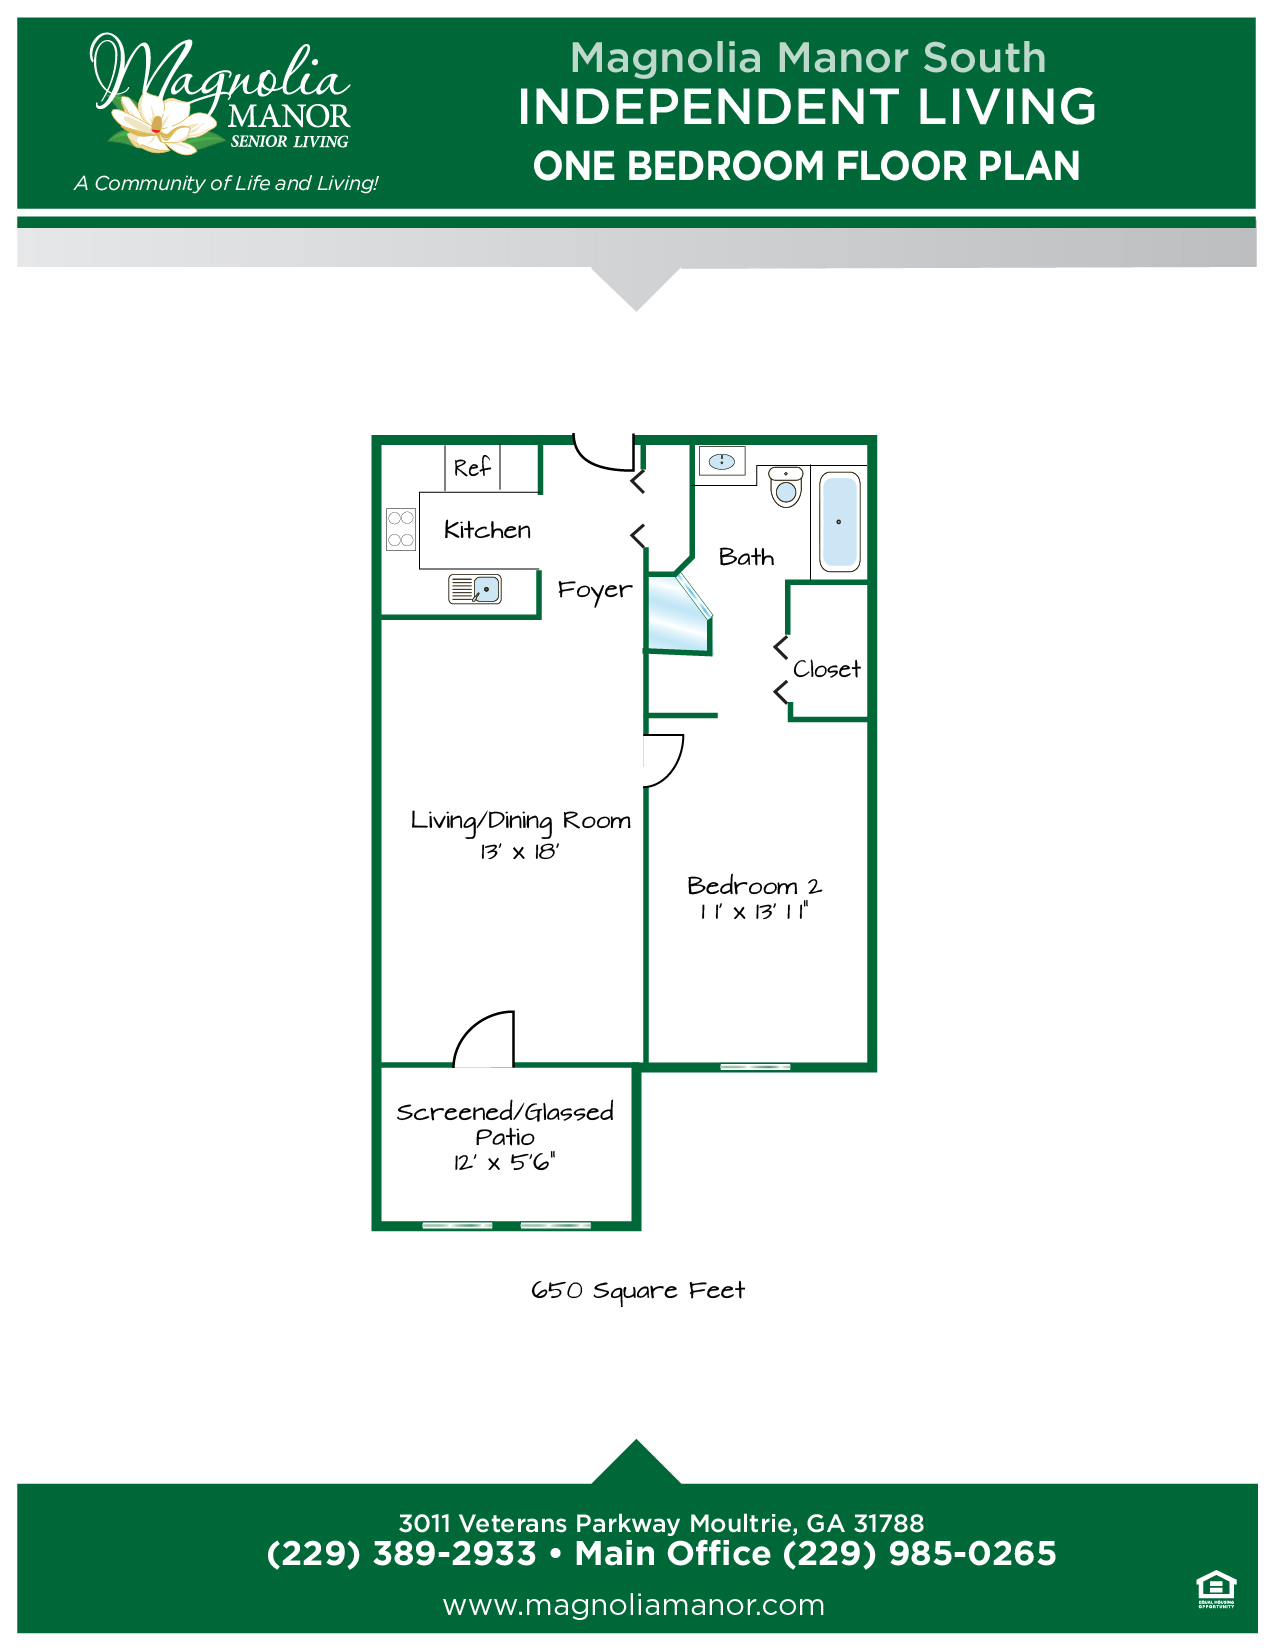 00344 MOULTRIE IL Floor Plan One Bedroom-01